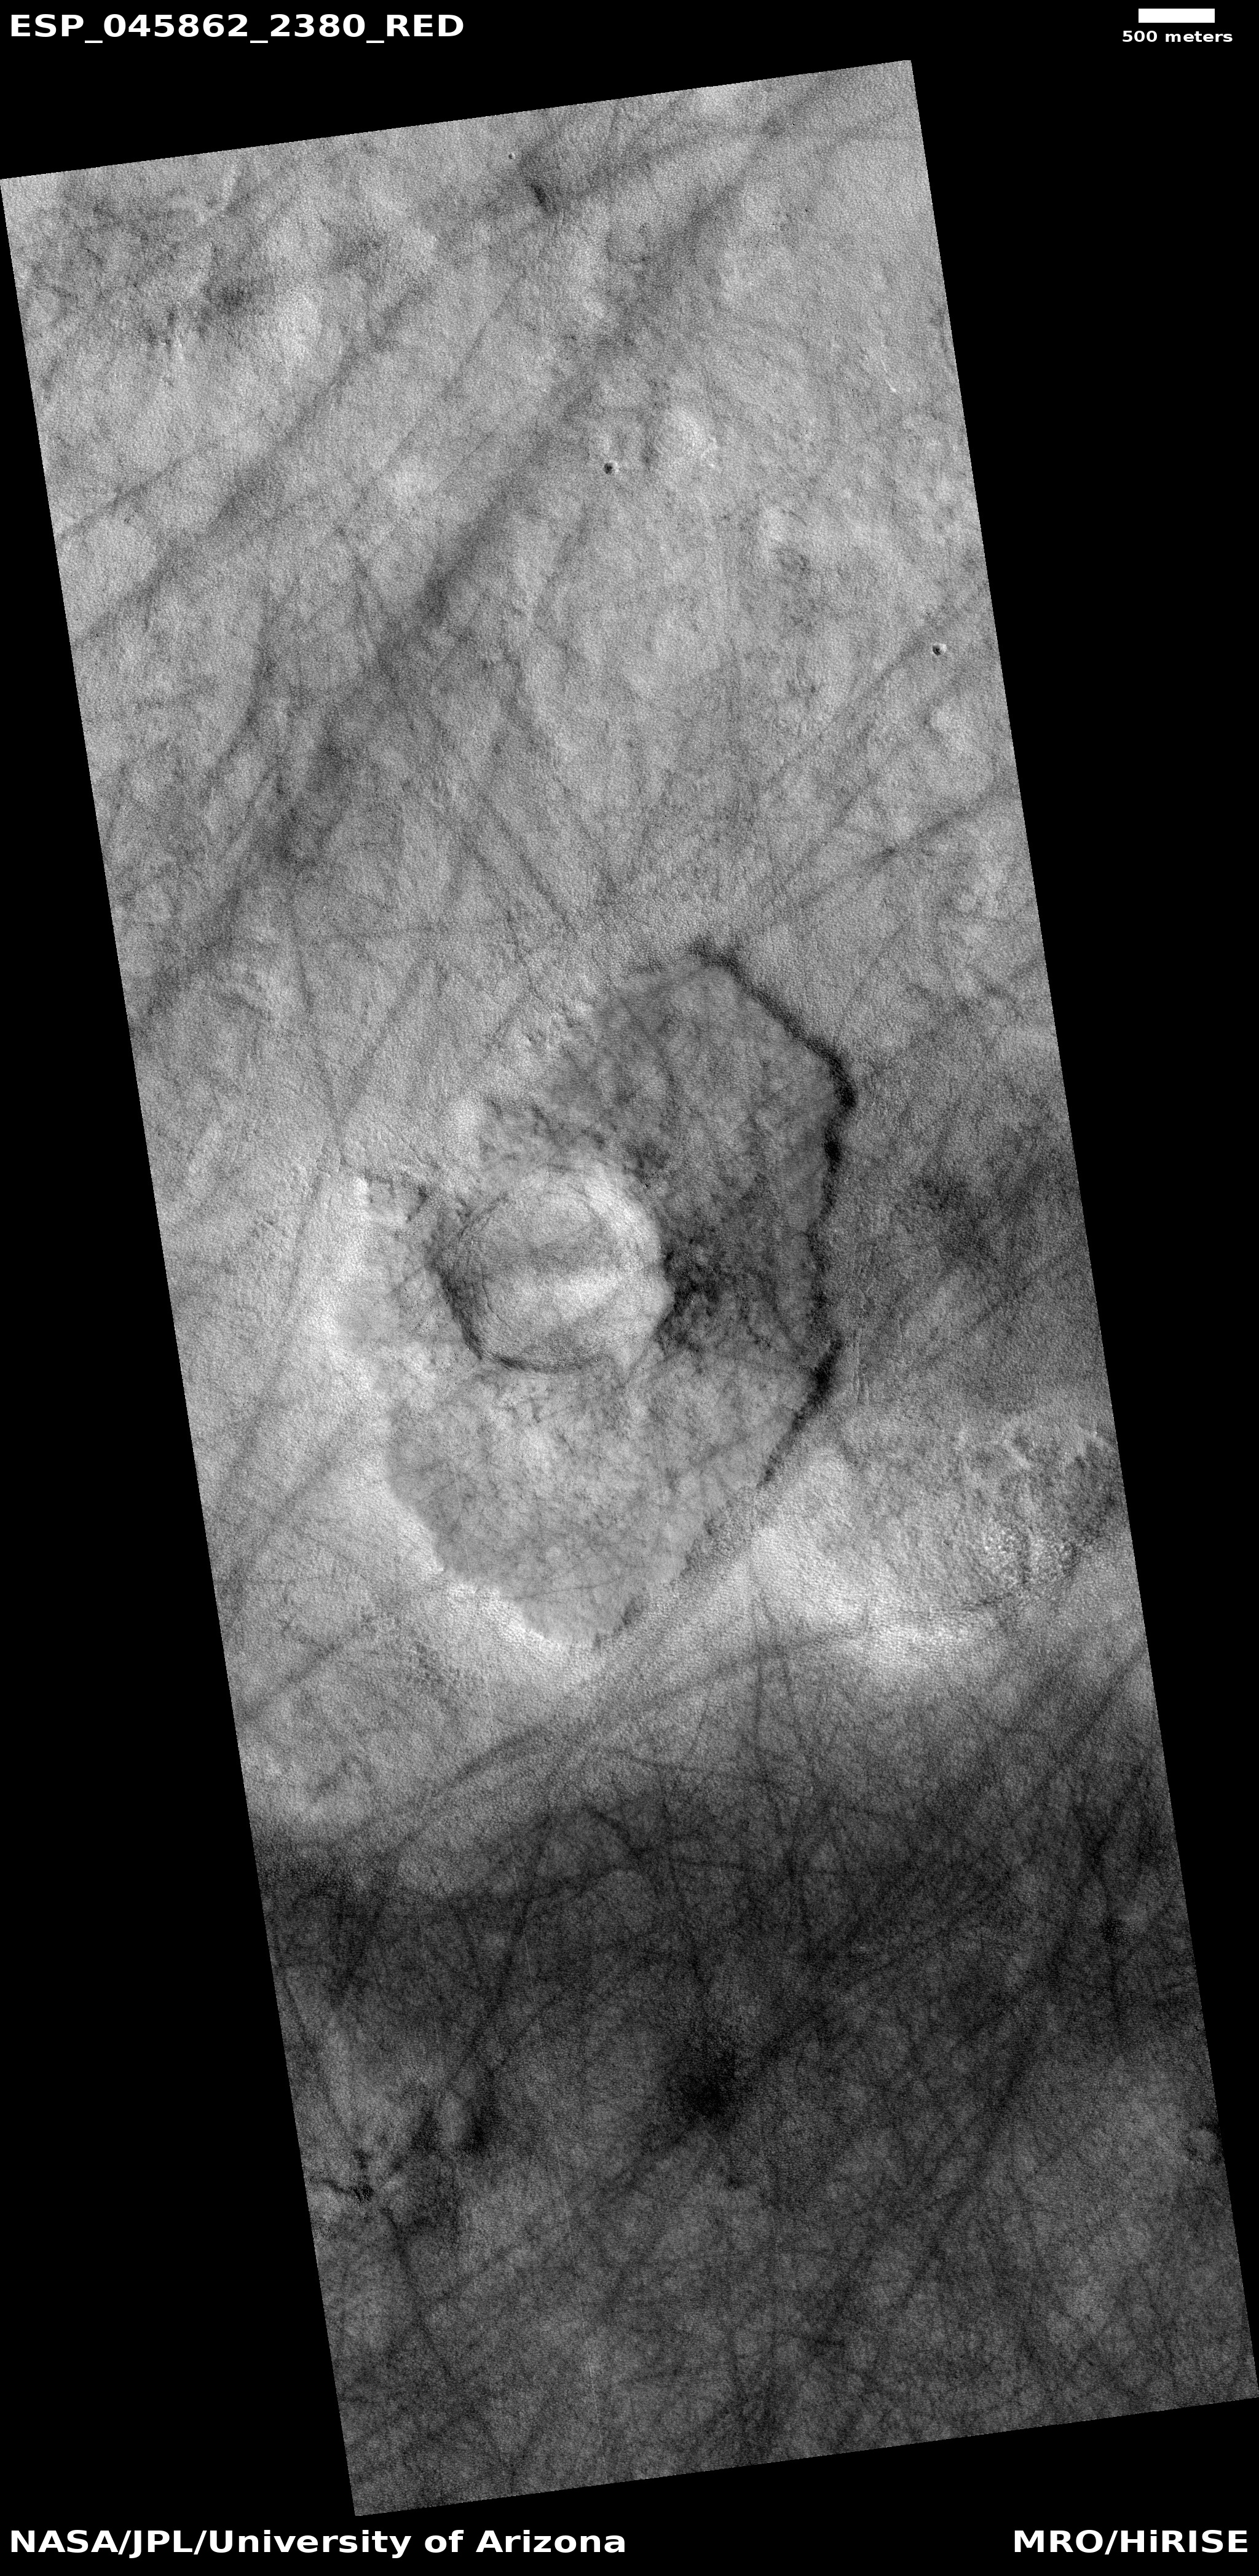 Pedestal crater and dust devil tracks